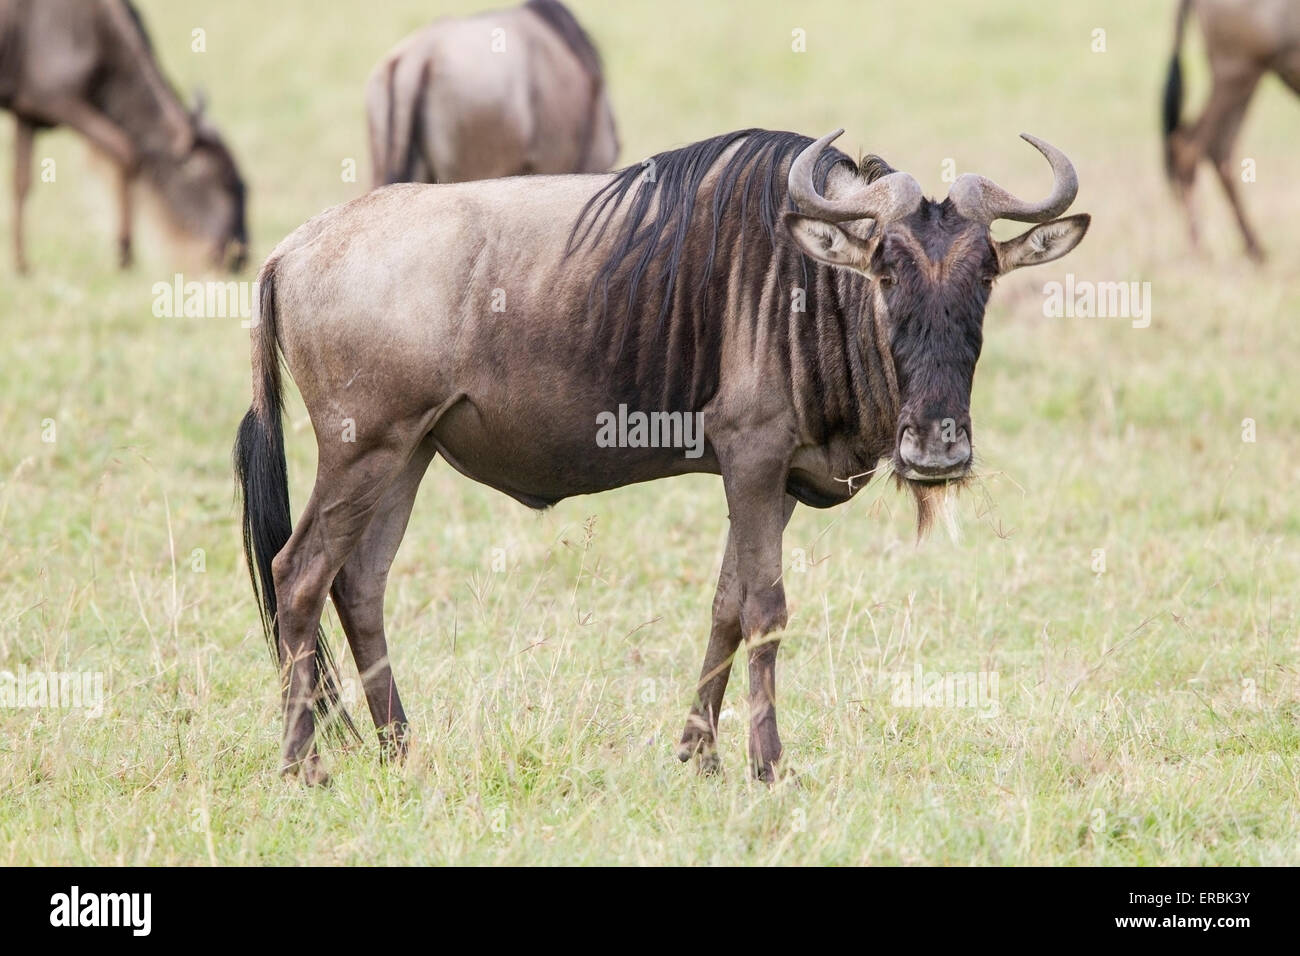 wildebeest, or gnu,  (Connochaetes taurinus) adult in herd on plains, Masai Mara, Kenya, Africa - Stock Image